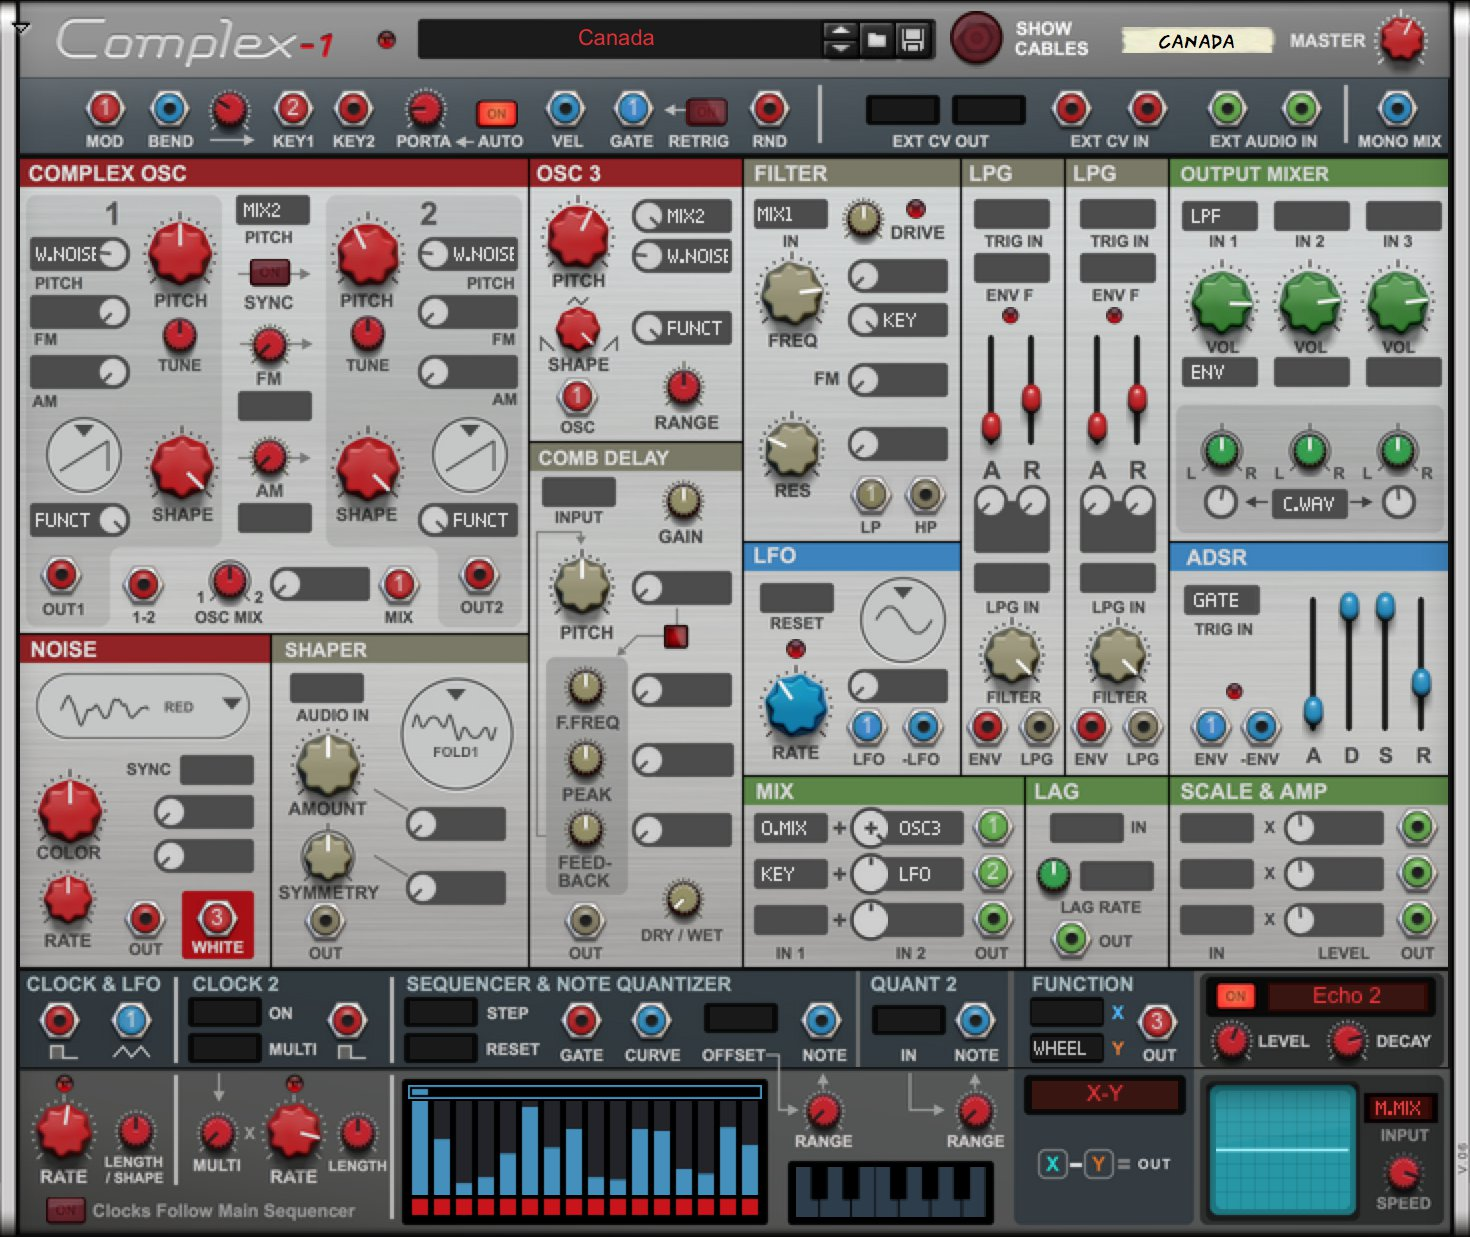 Kvr Propellerhead Releases Complex 1 Modular Synthesizer